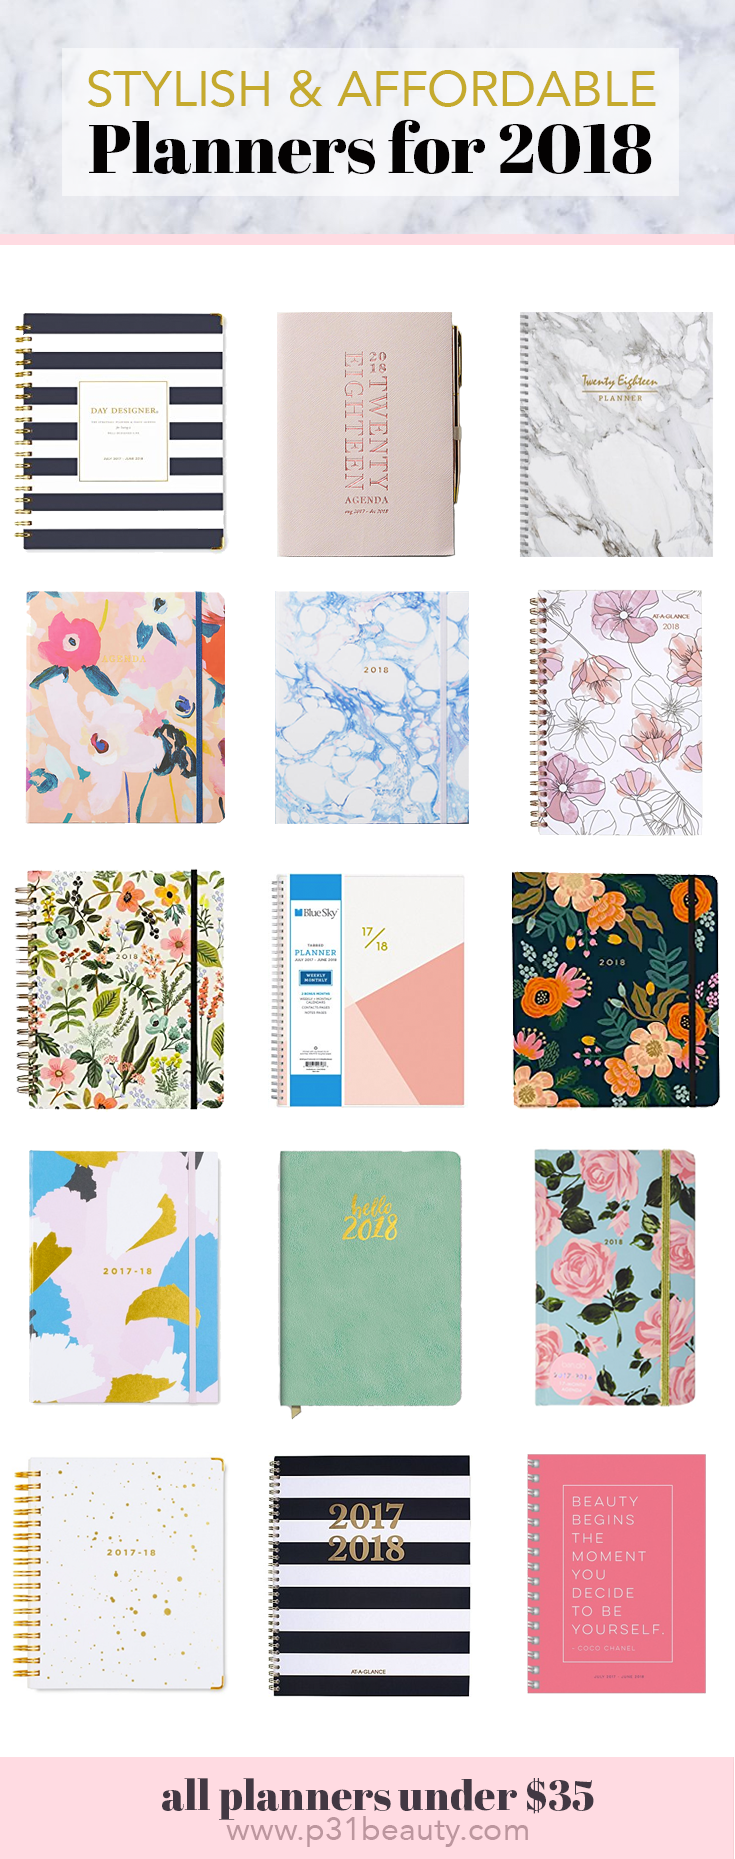 15 stylish and affordable planners under $35 for school, work, blogging, and day to day planning